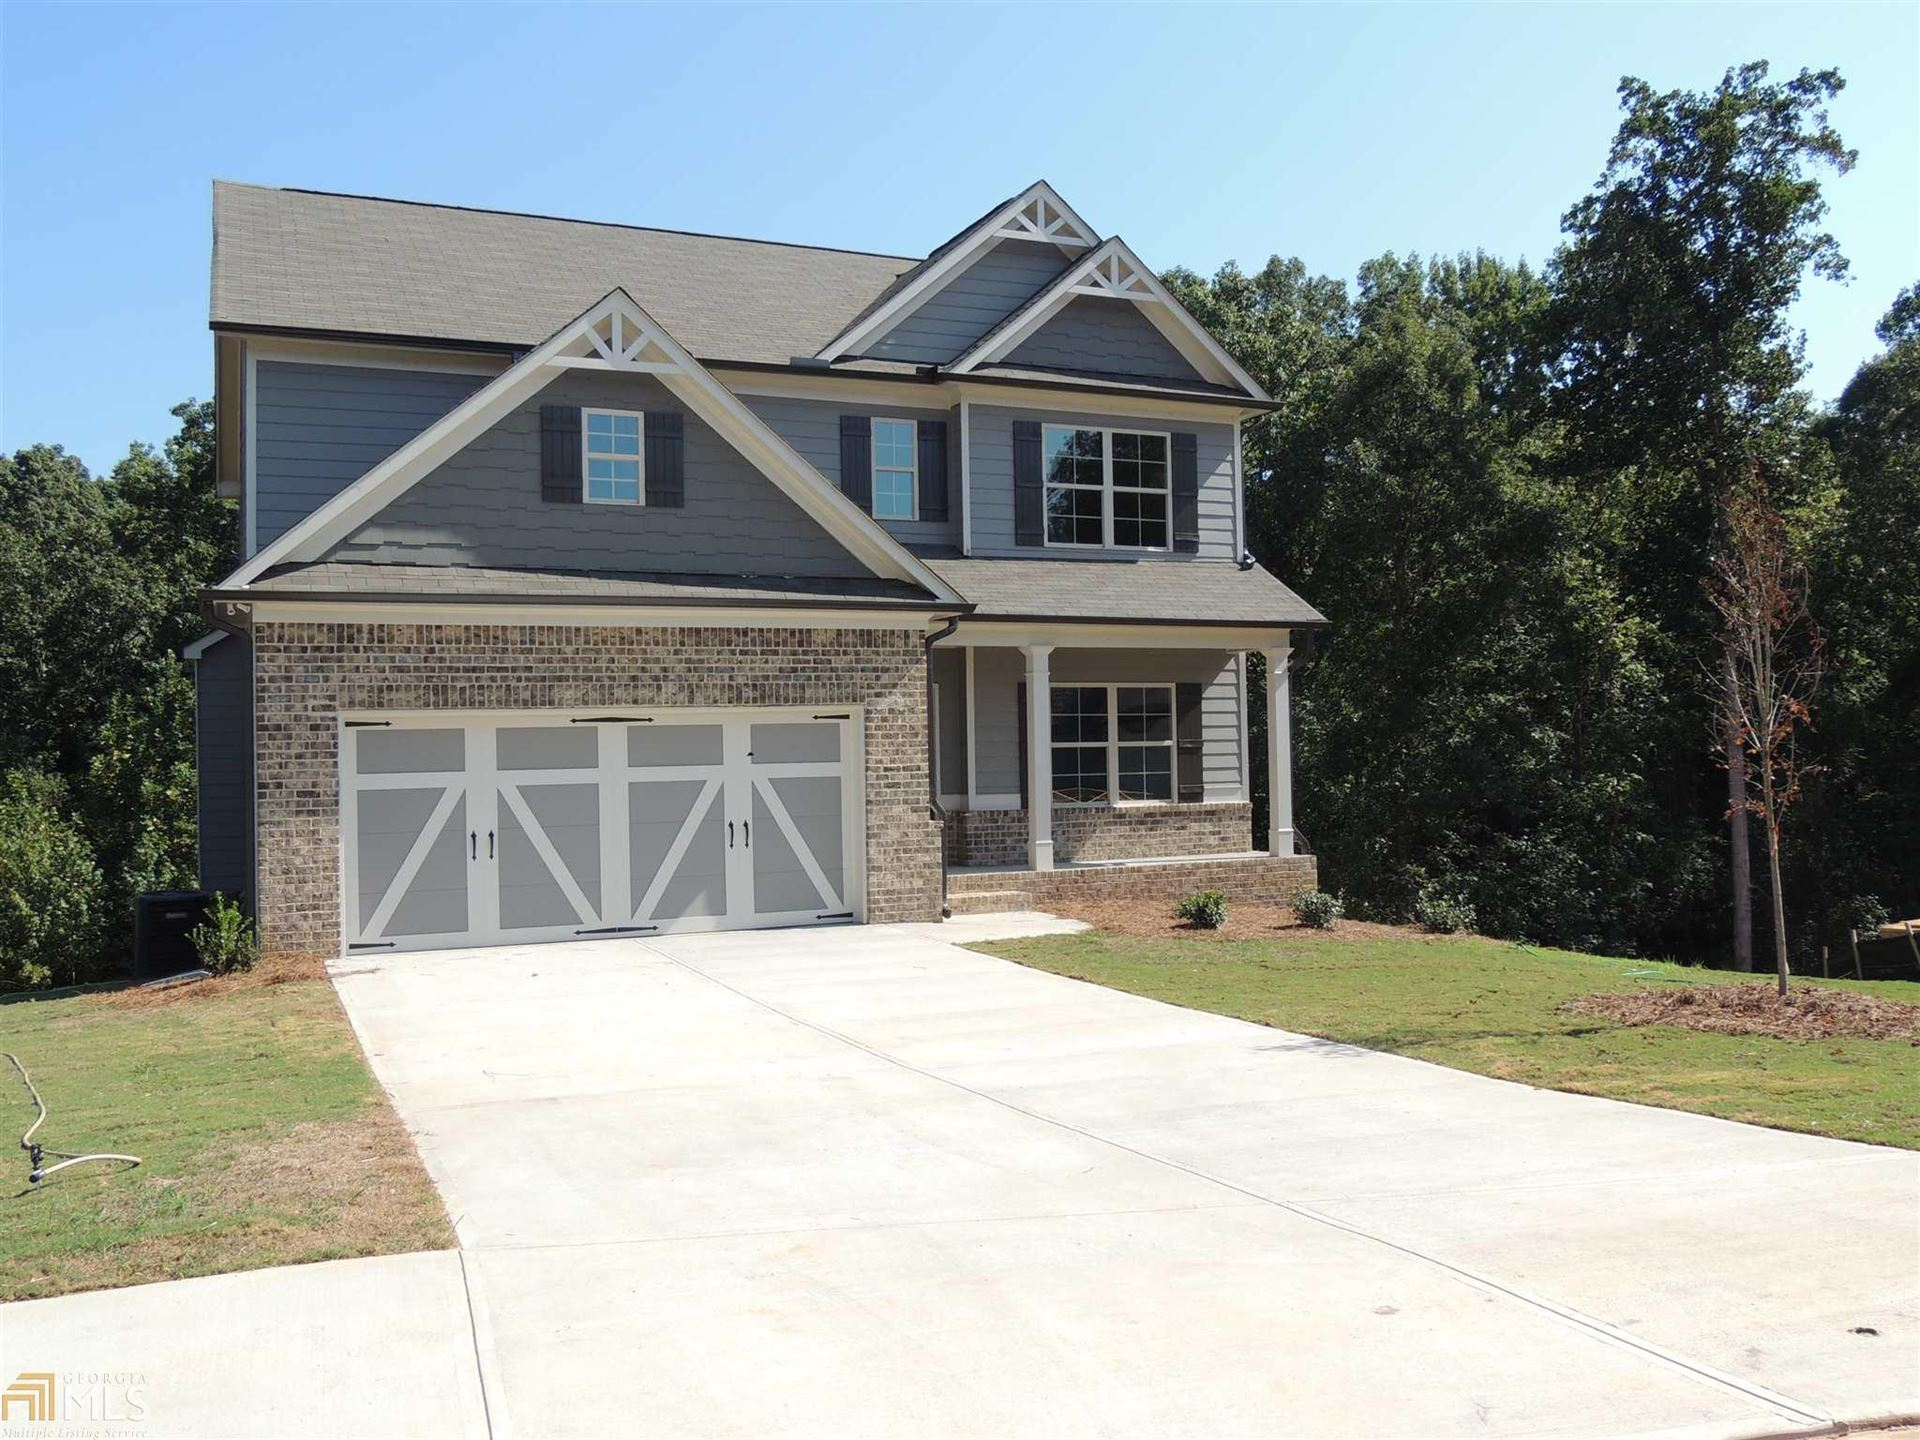 Photo for 956 Wingate Cir, Jefferson, GA 30549 (MLS # 8583273)